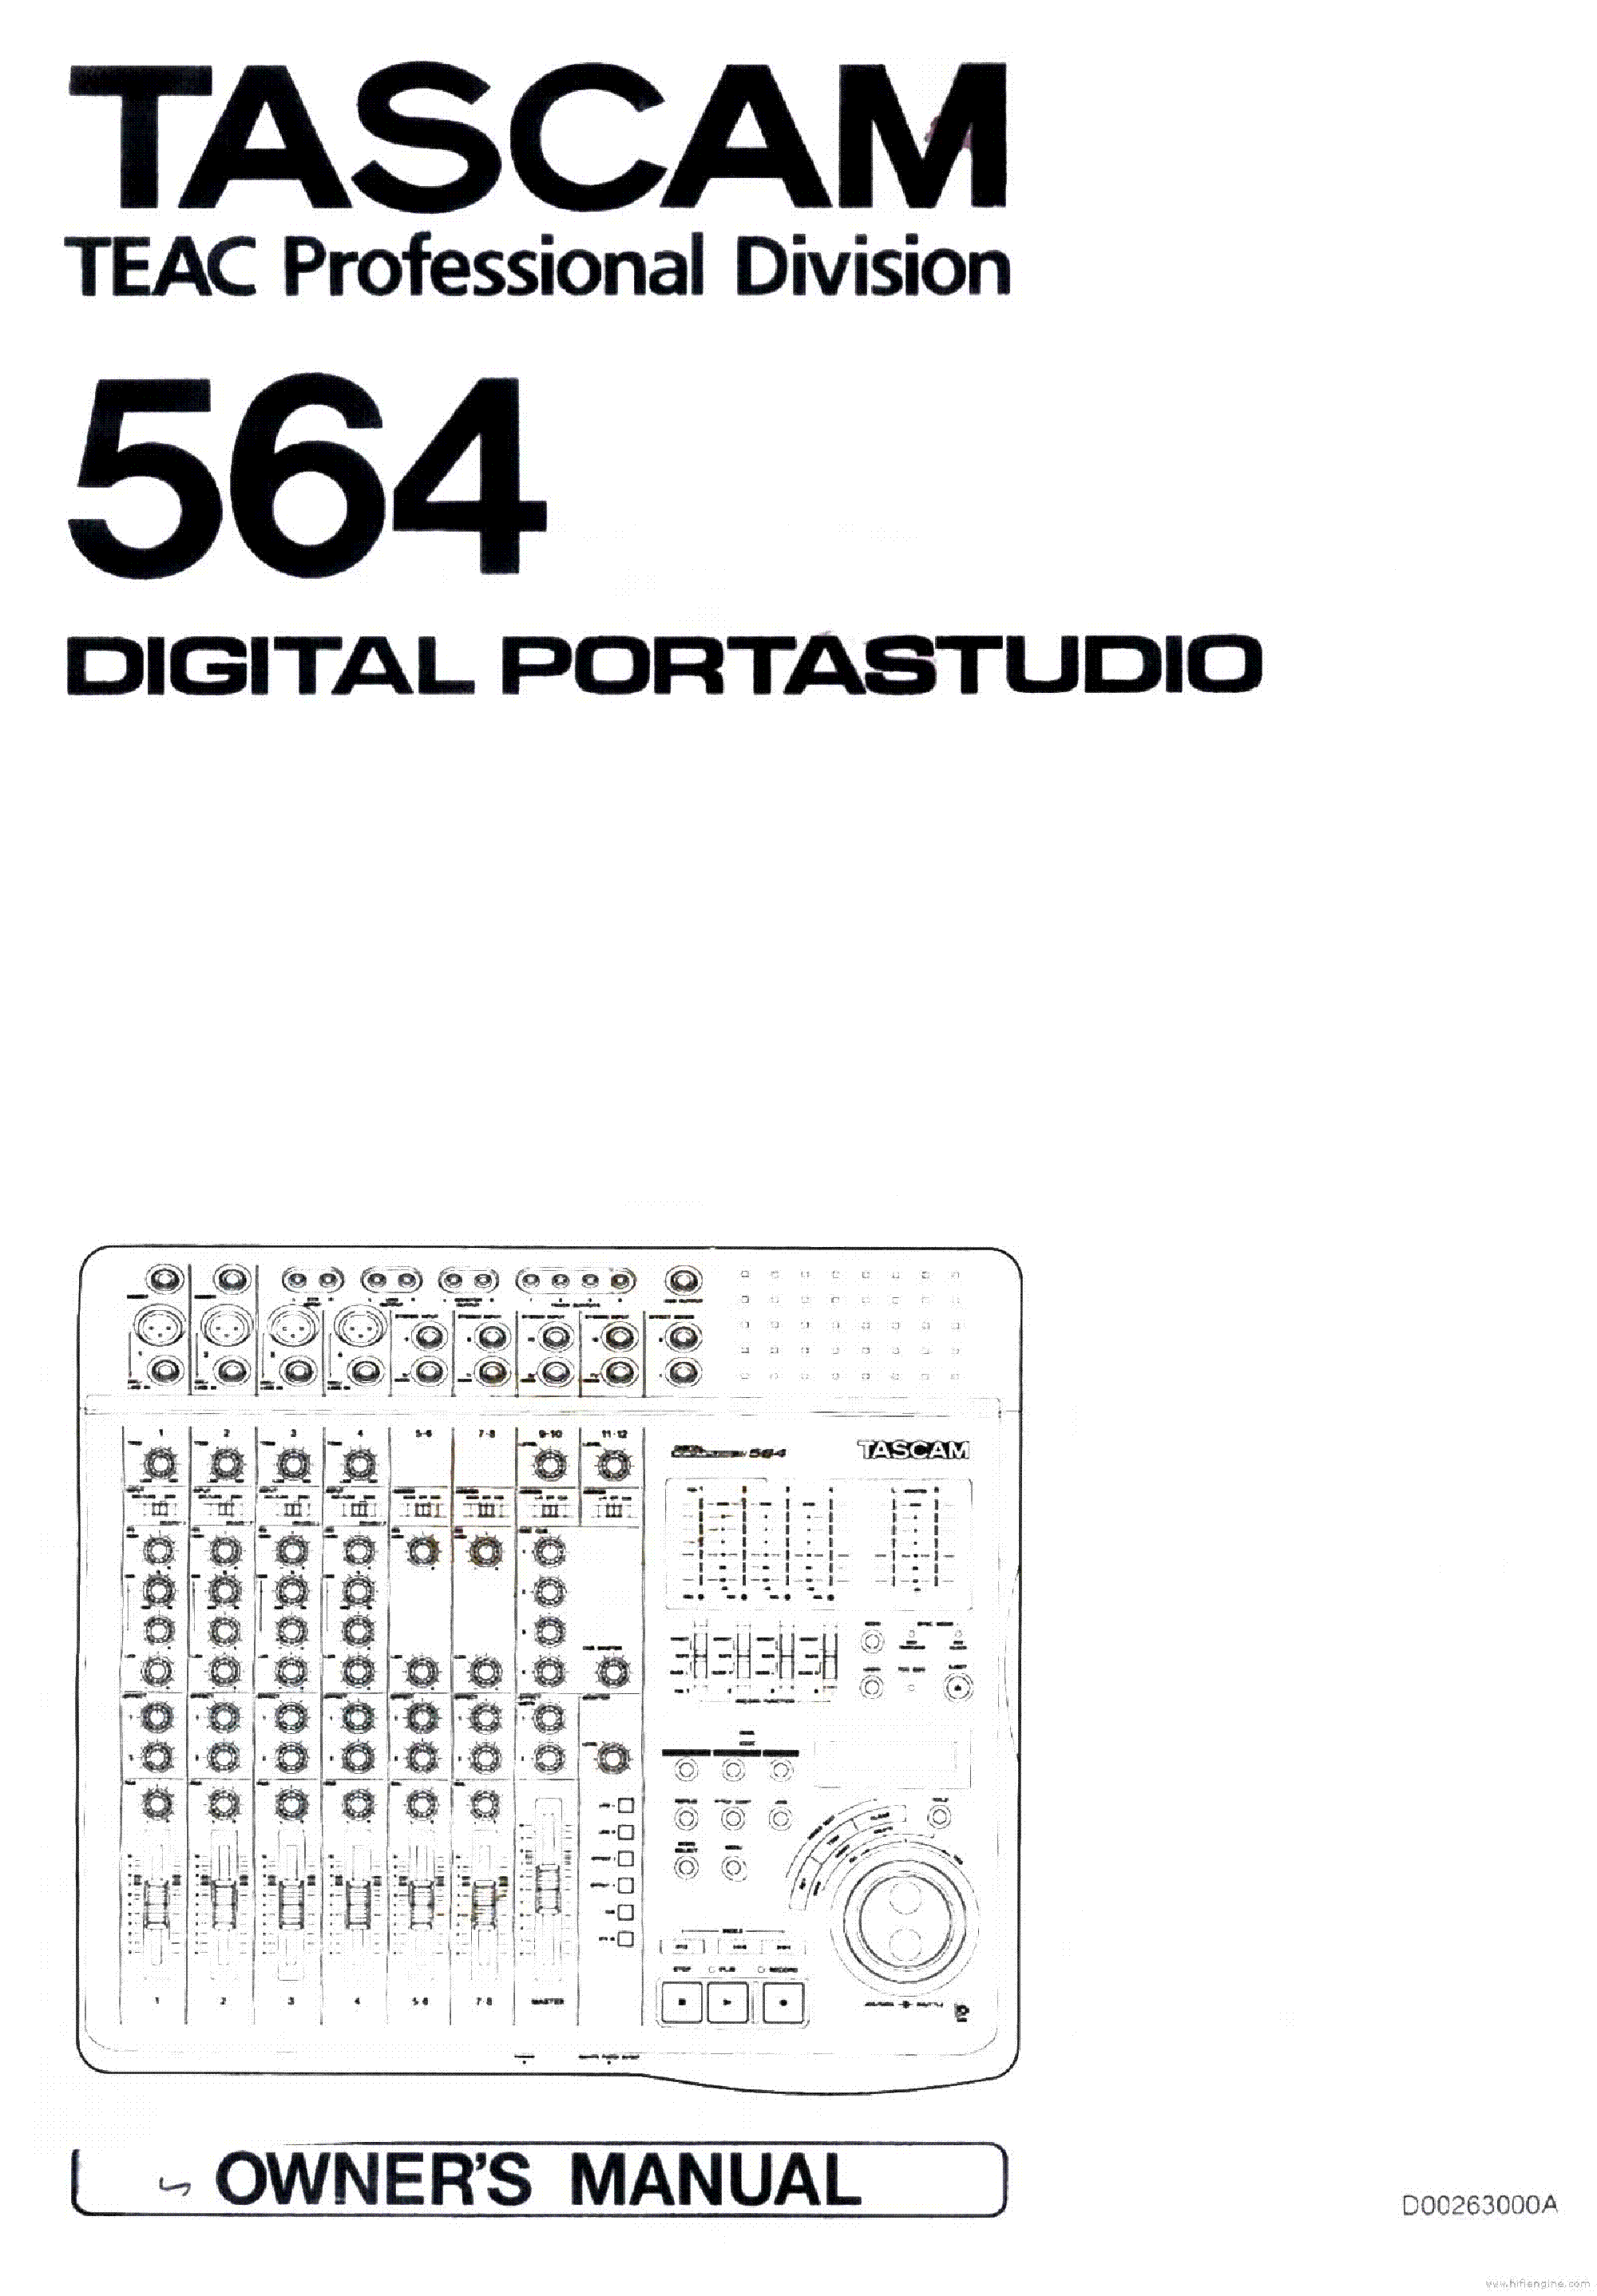 Tascam 564 Portastudio Service Manual Download  Schematics  Eeprom  Repair Info For Electronics